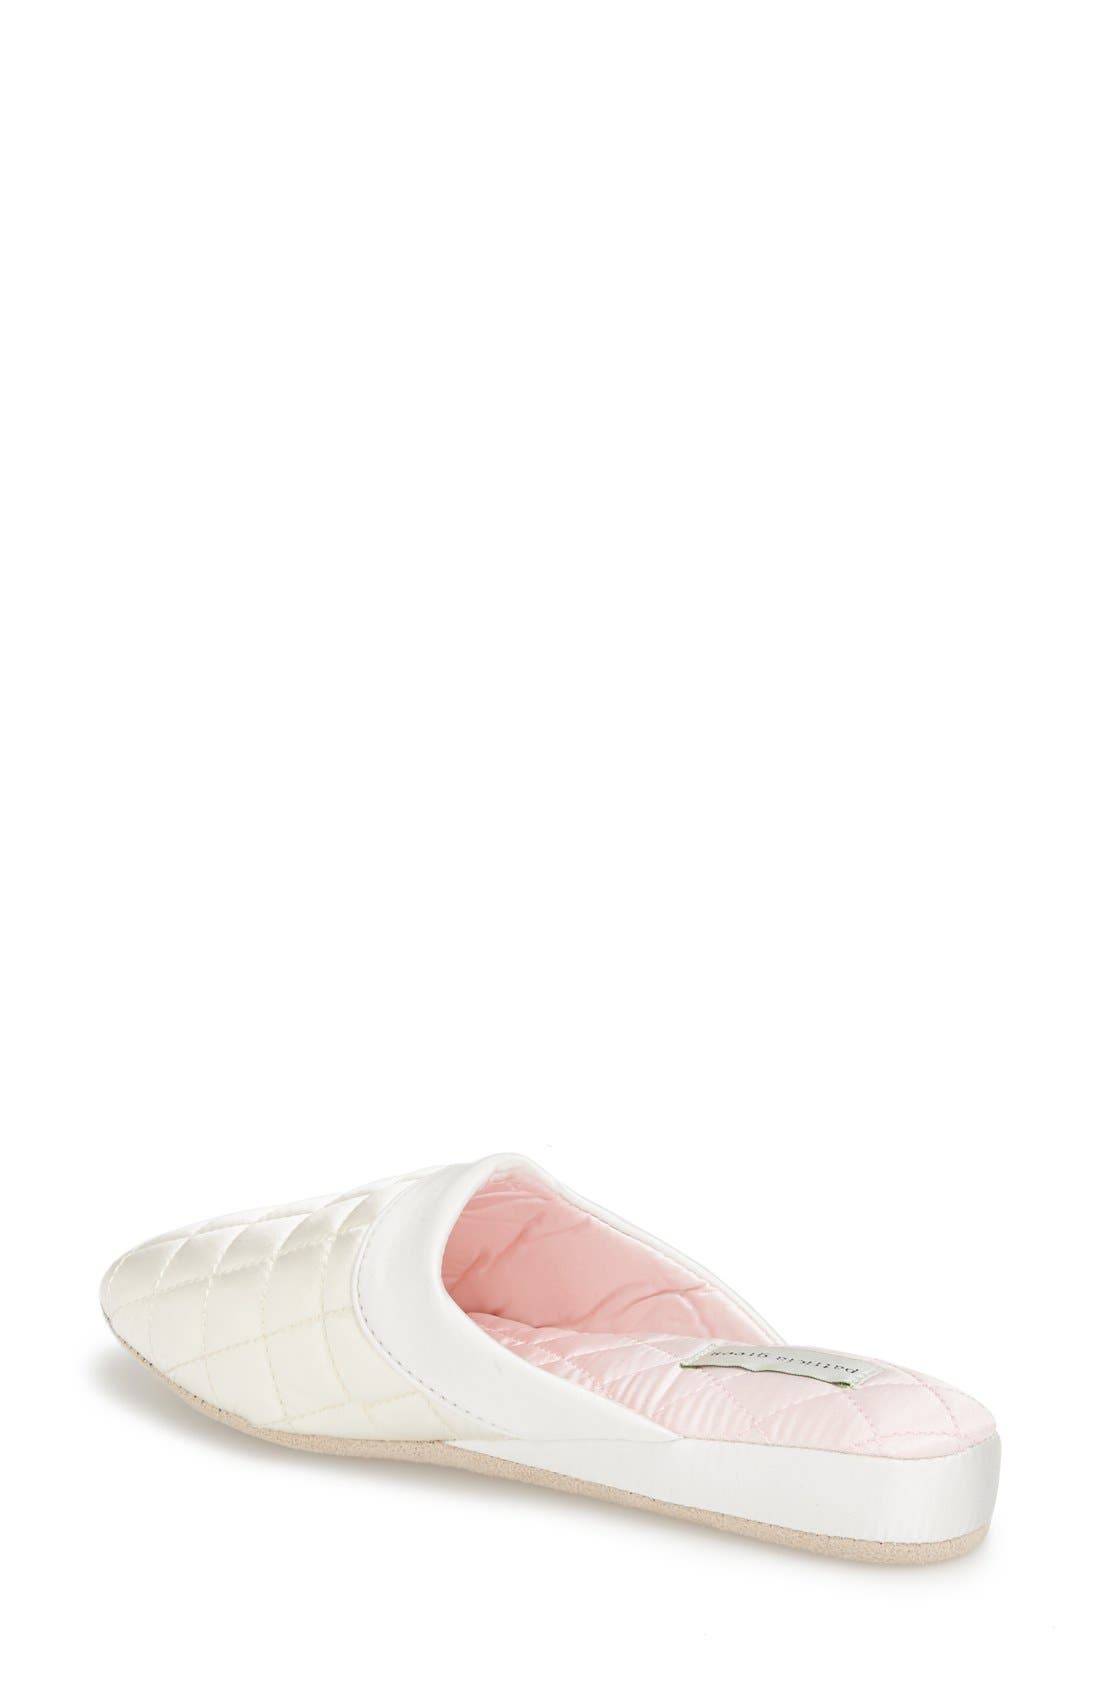 'Jackie' Slipper,                             Alternate thumbnail 2, color,                             Ivory/ Pink